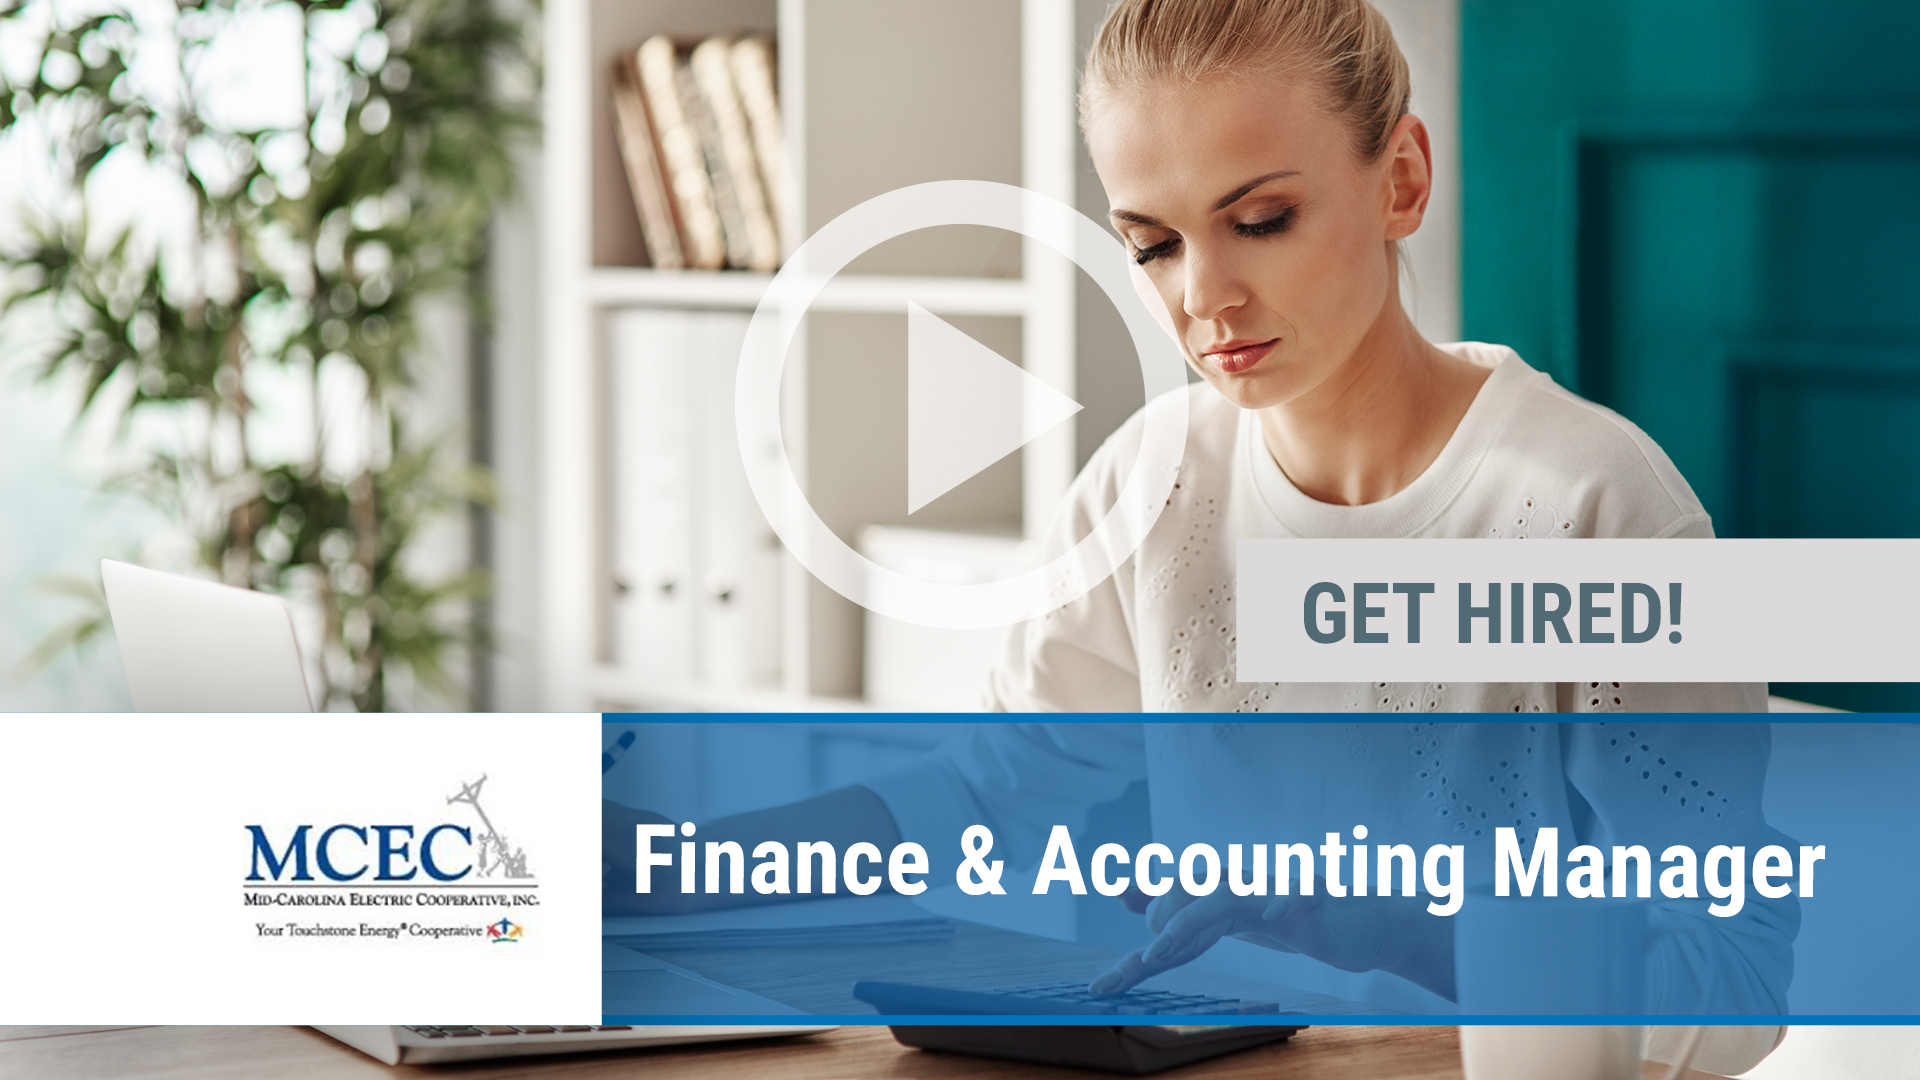 Watch our careers video for available job opening Finance & Accounting Manager in Lexington, SC